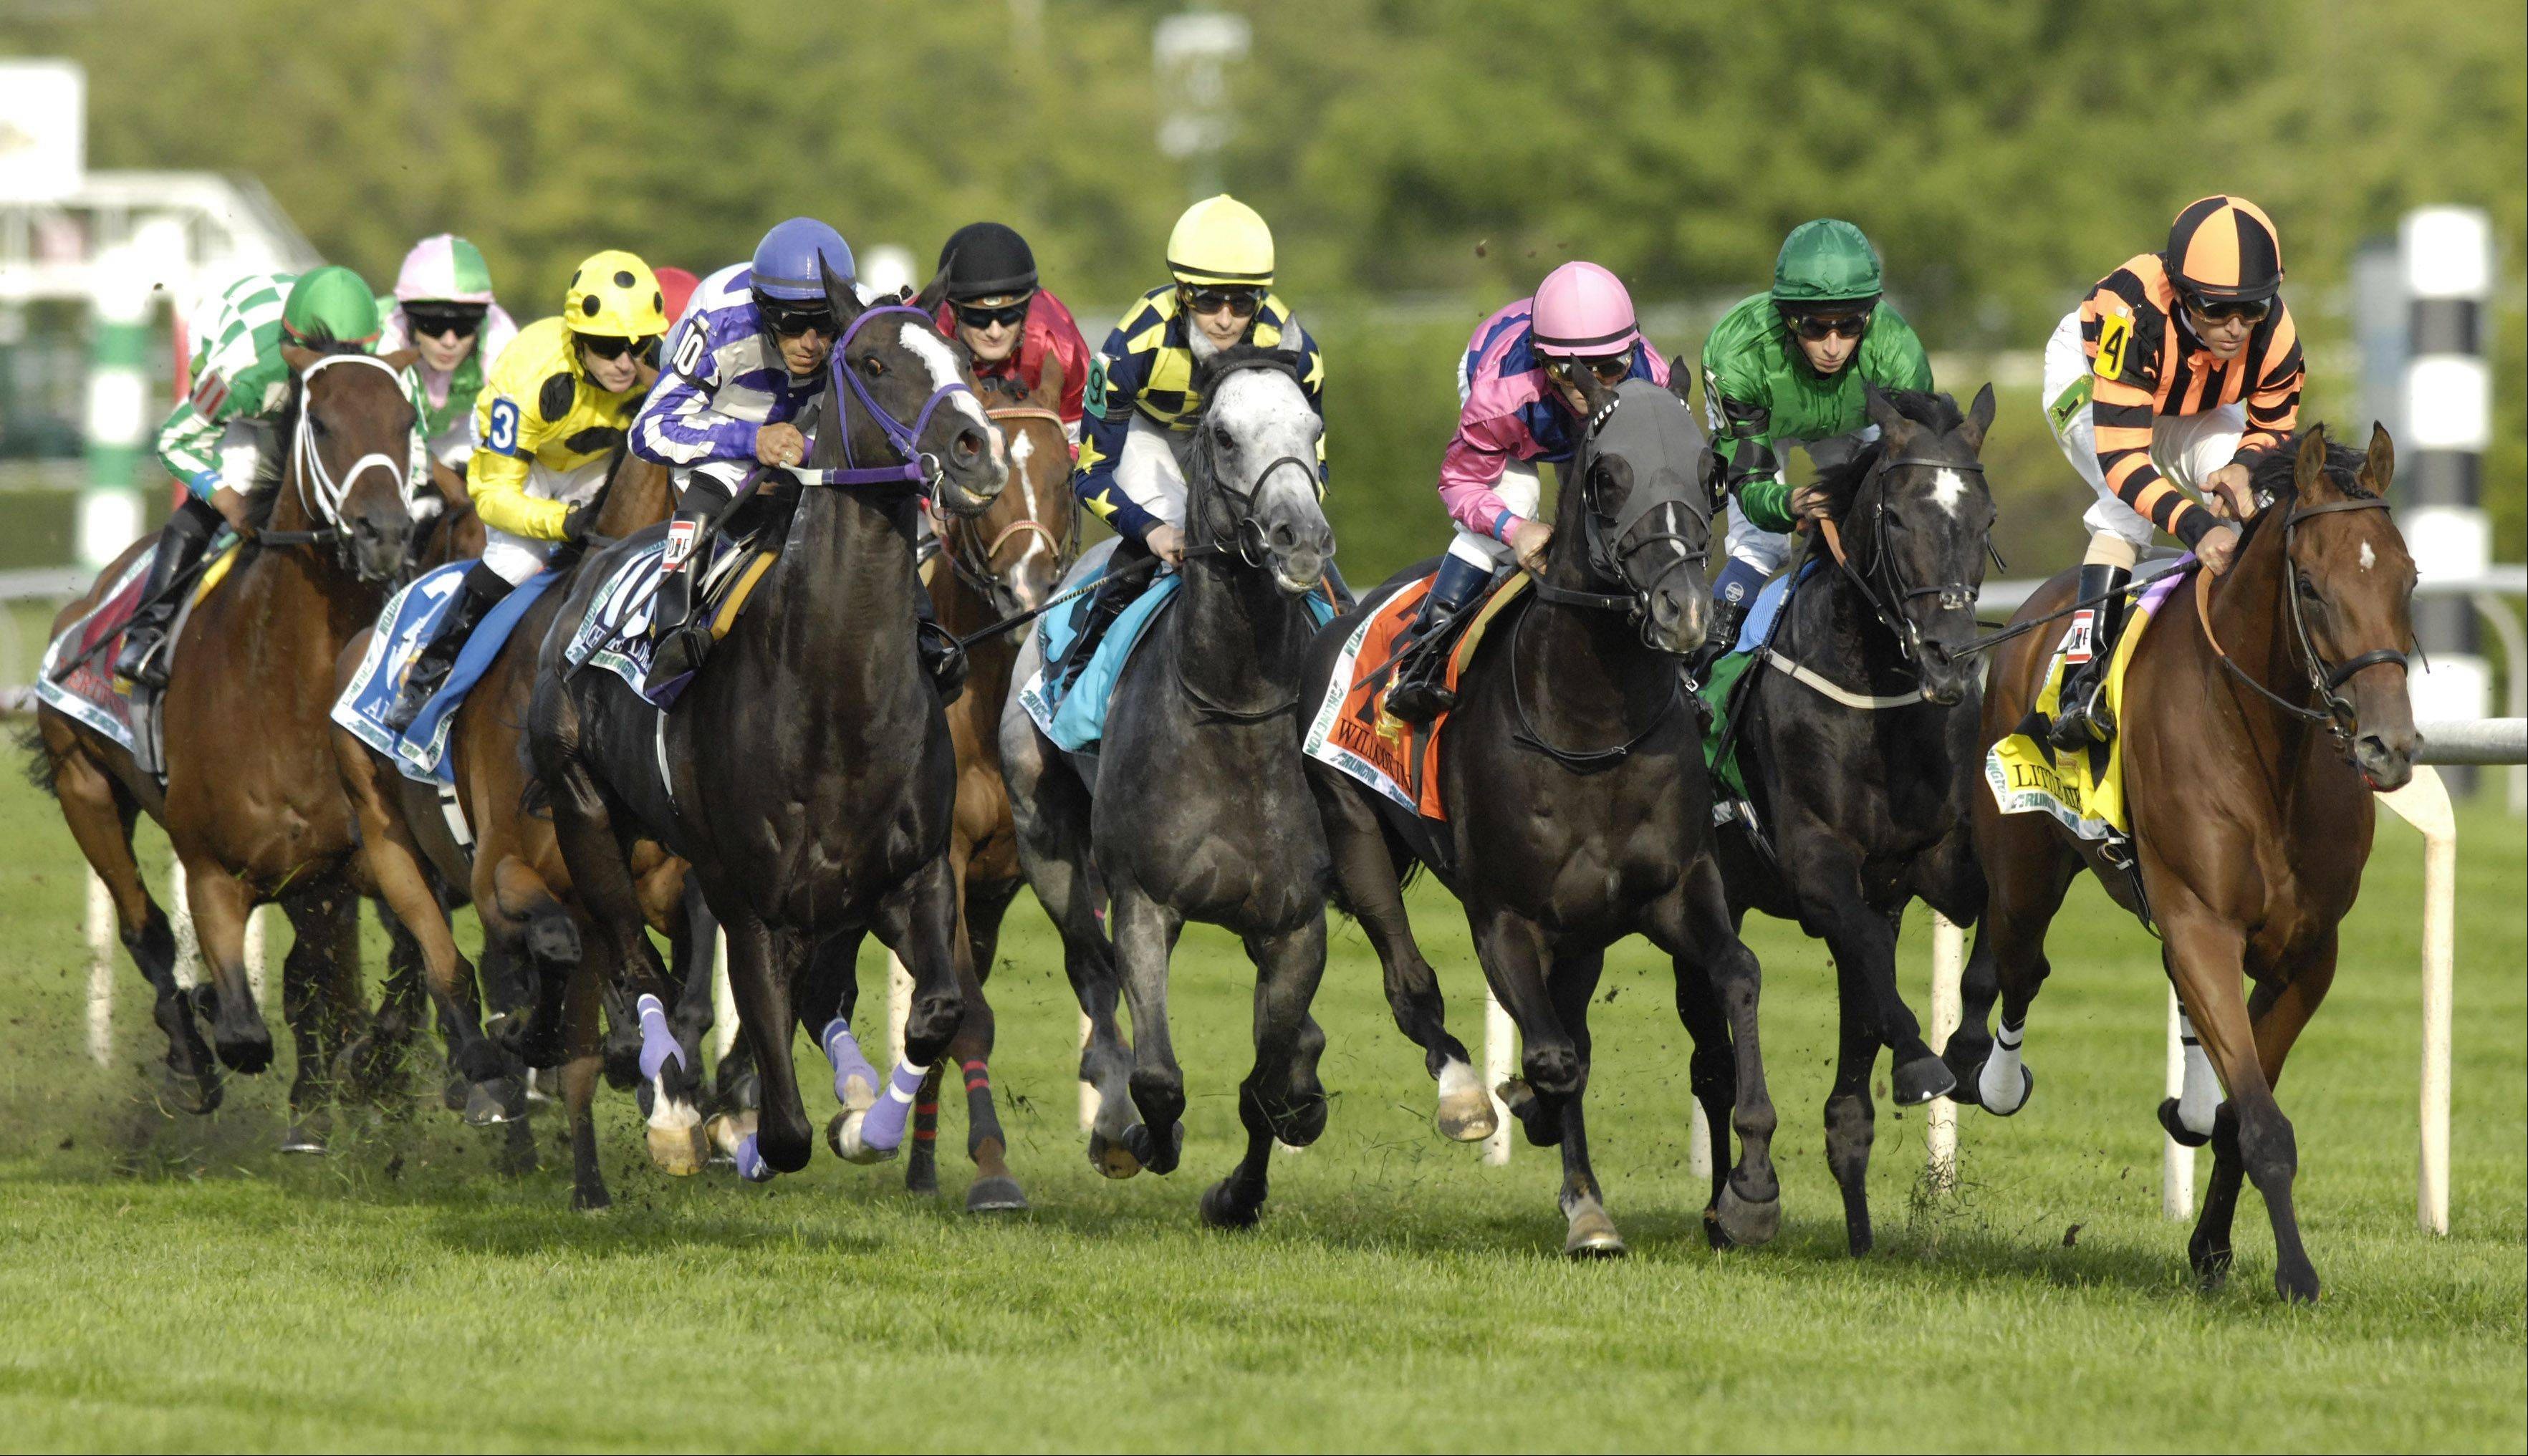 Little Mike, at far right, won the 2012 Arlington Million race at Arlington Park. This year's race will be telecast by WGN-TV.